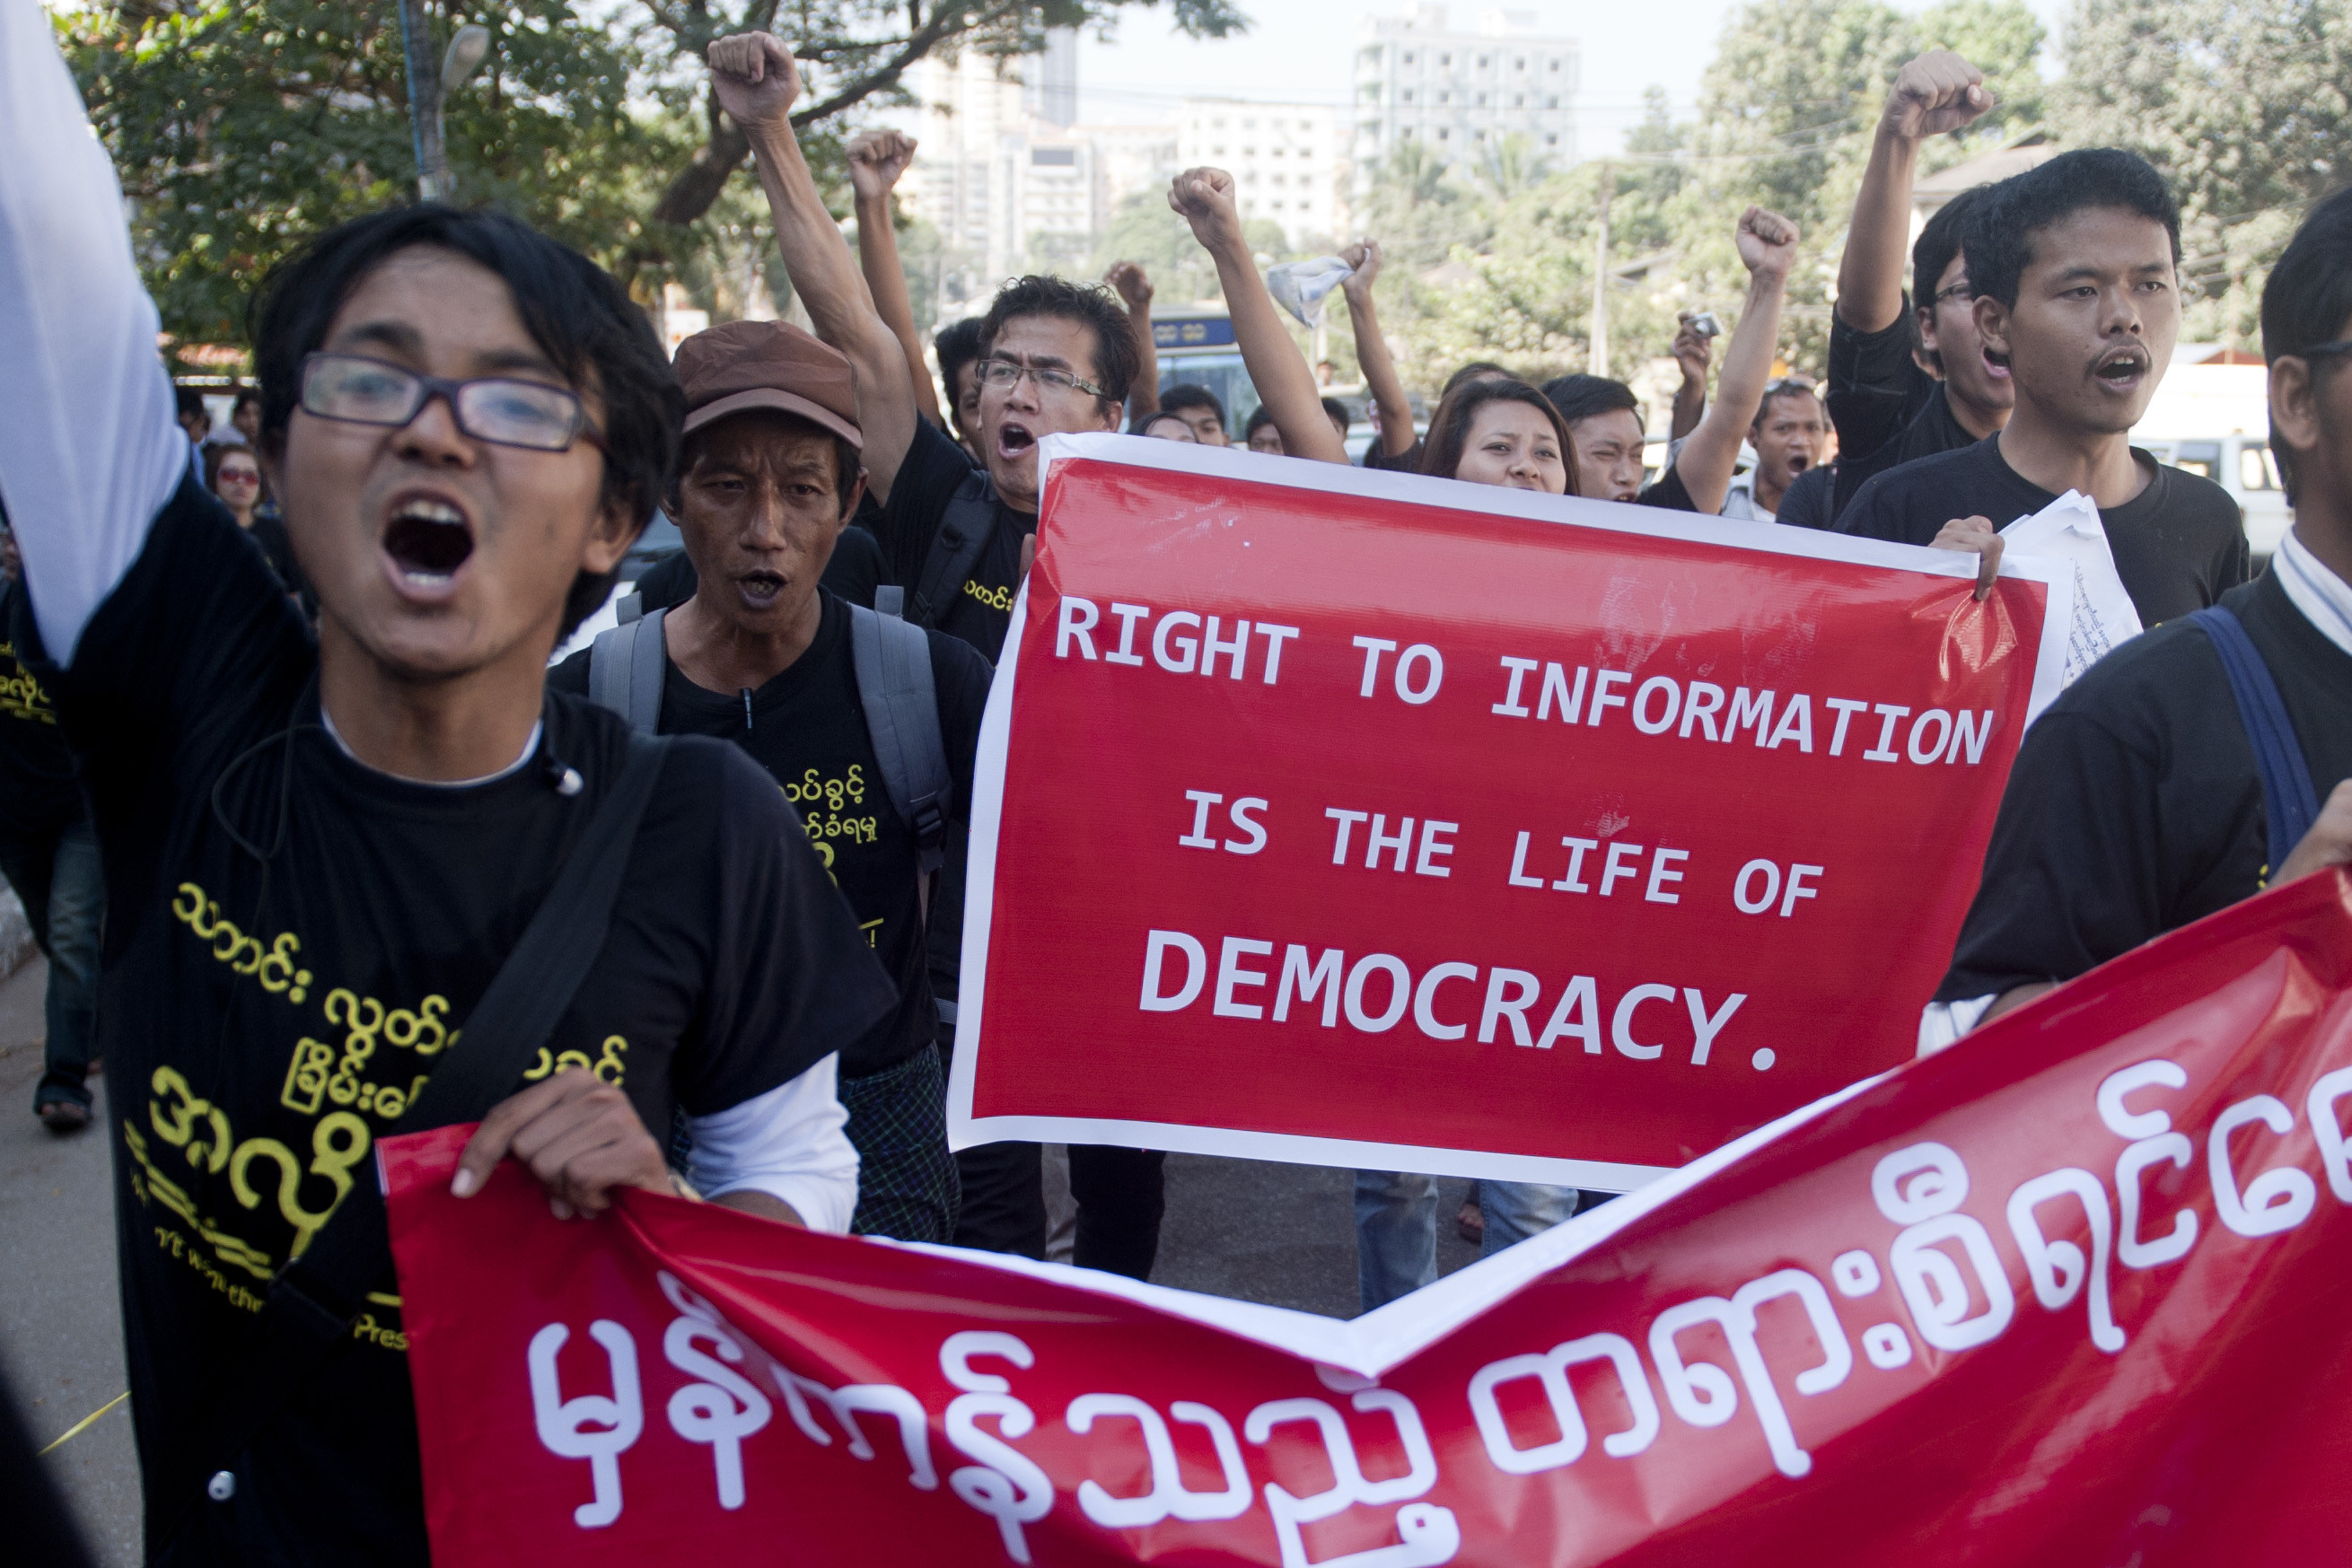 Myanmar Supreme Court hears appeal of jailed journalists